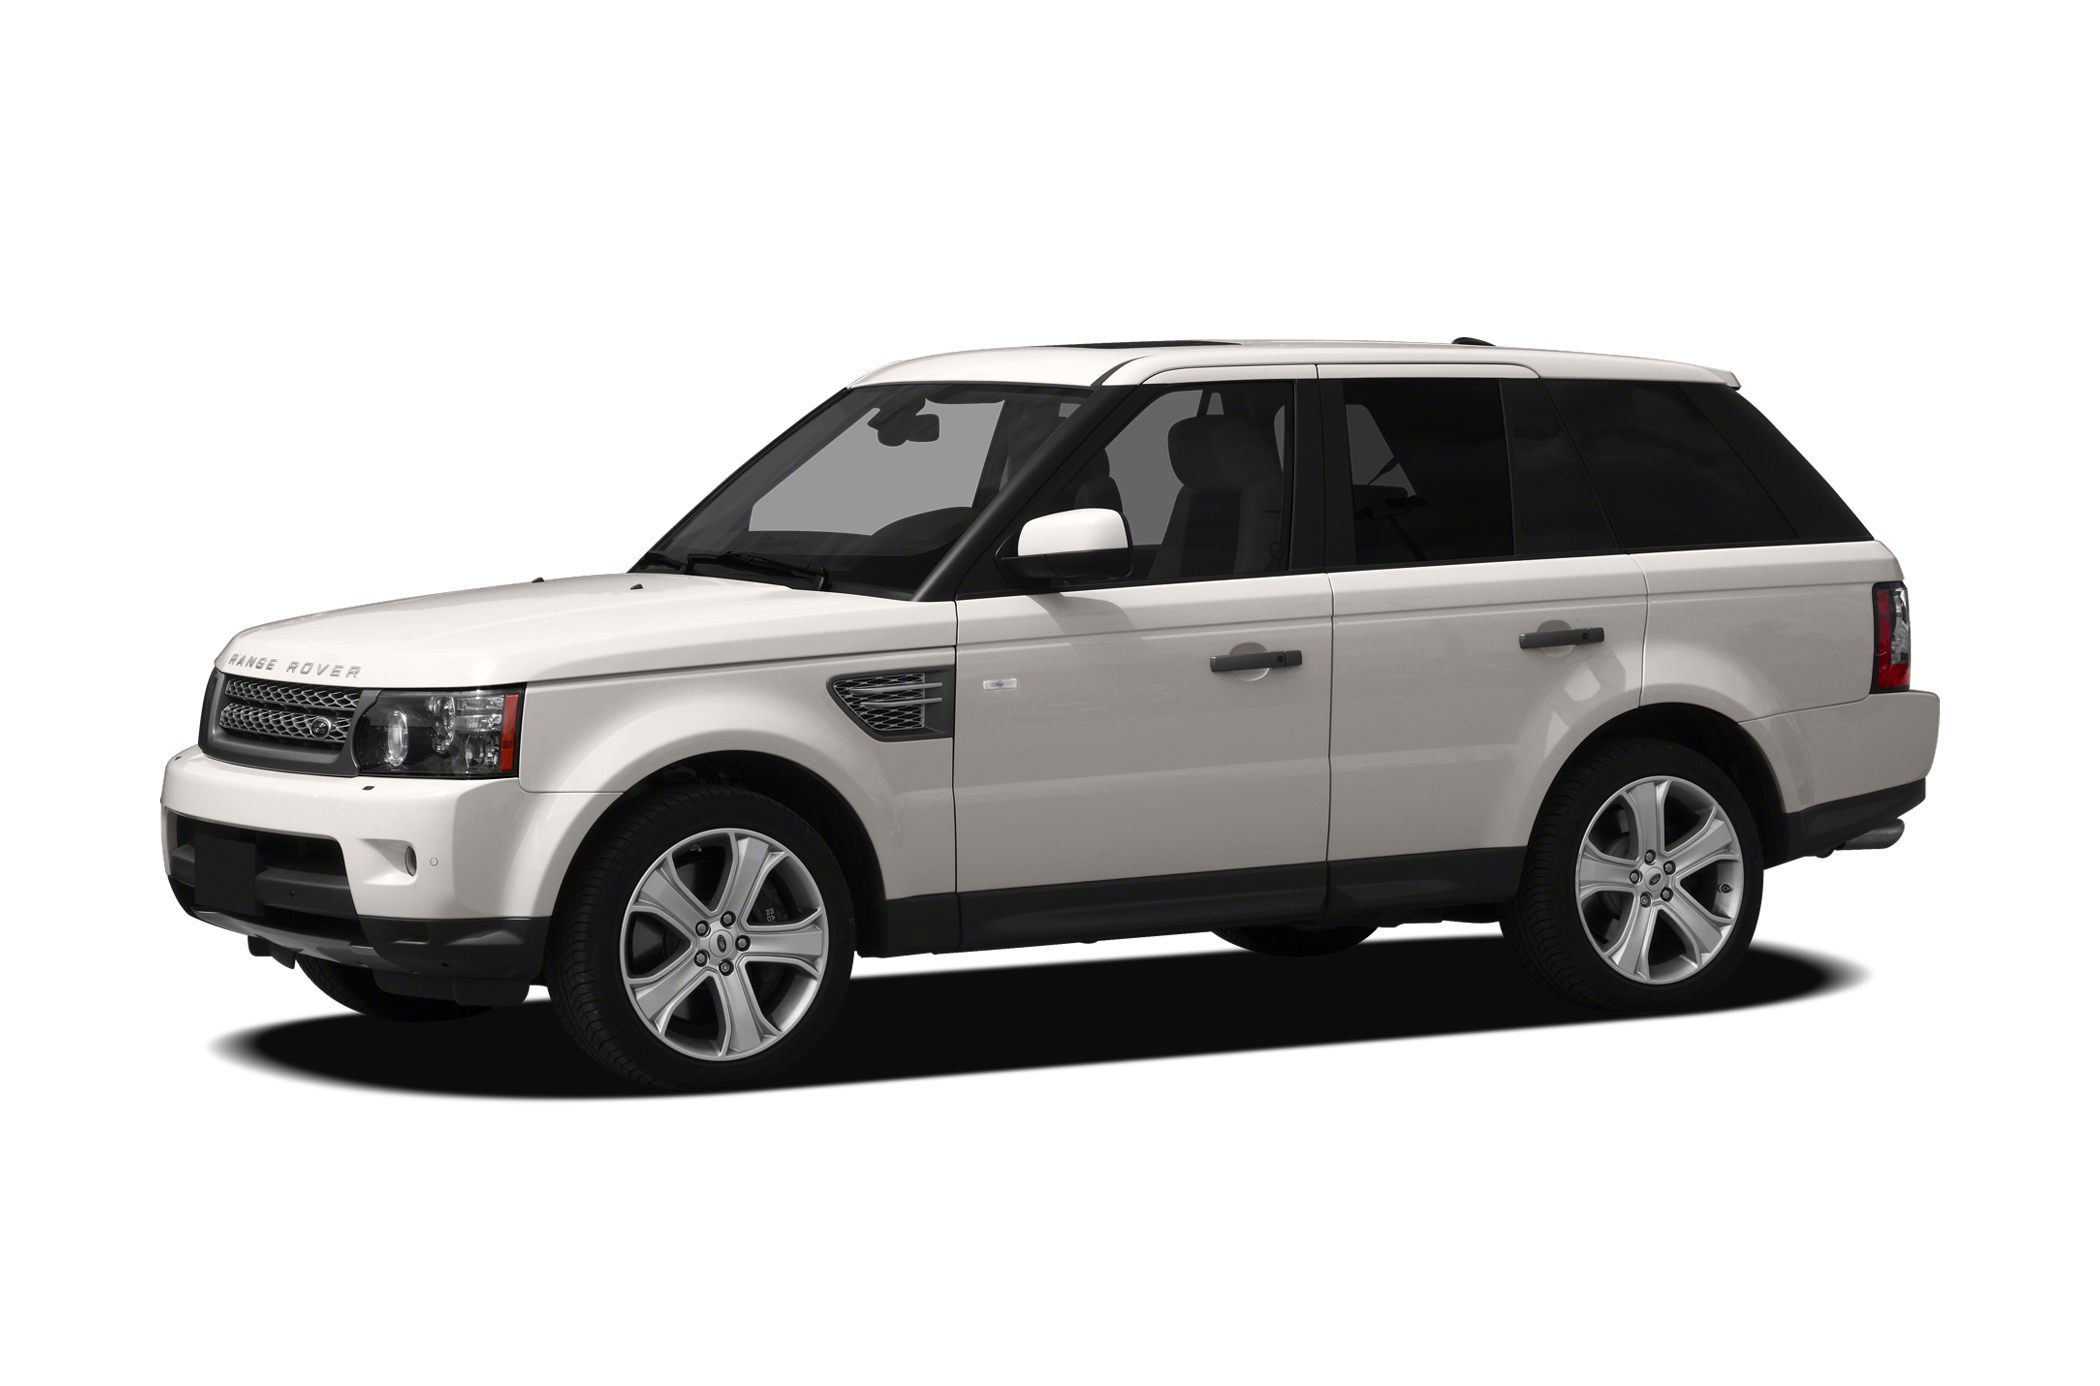 2010 Land Rover Range Rover Sport Reviews Specs And